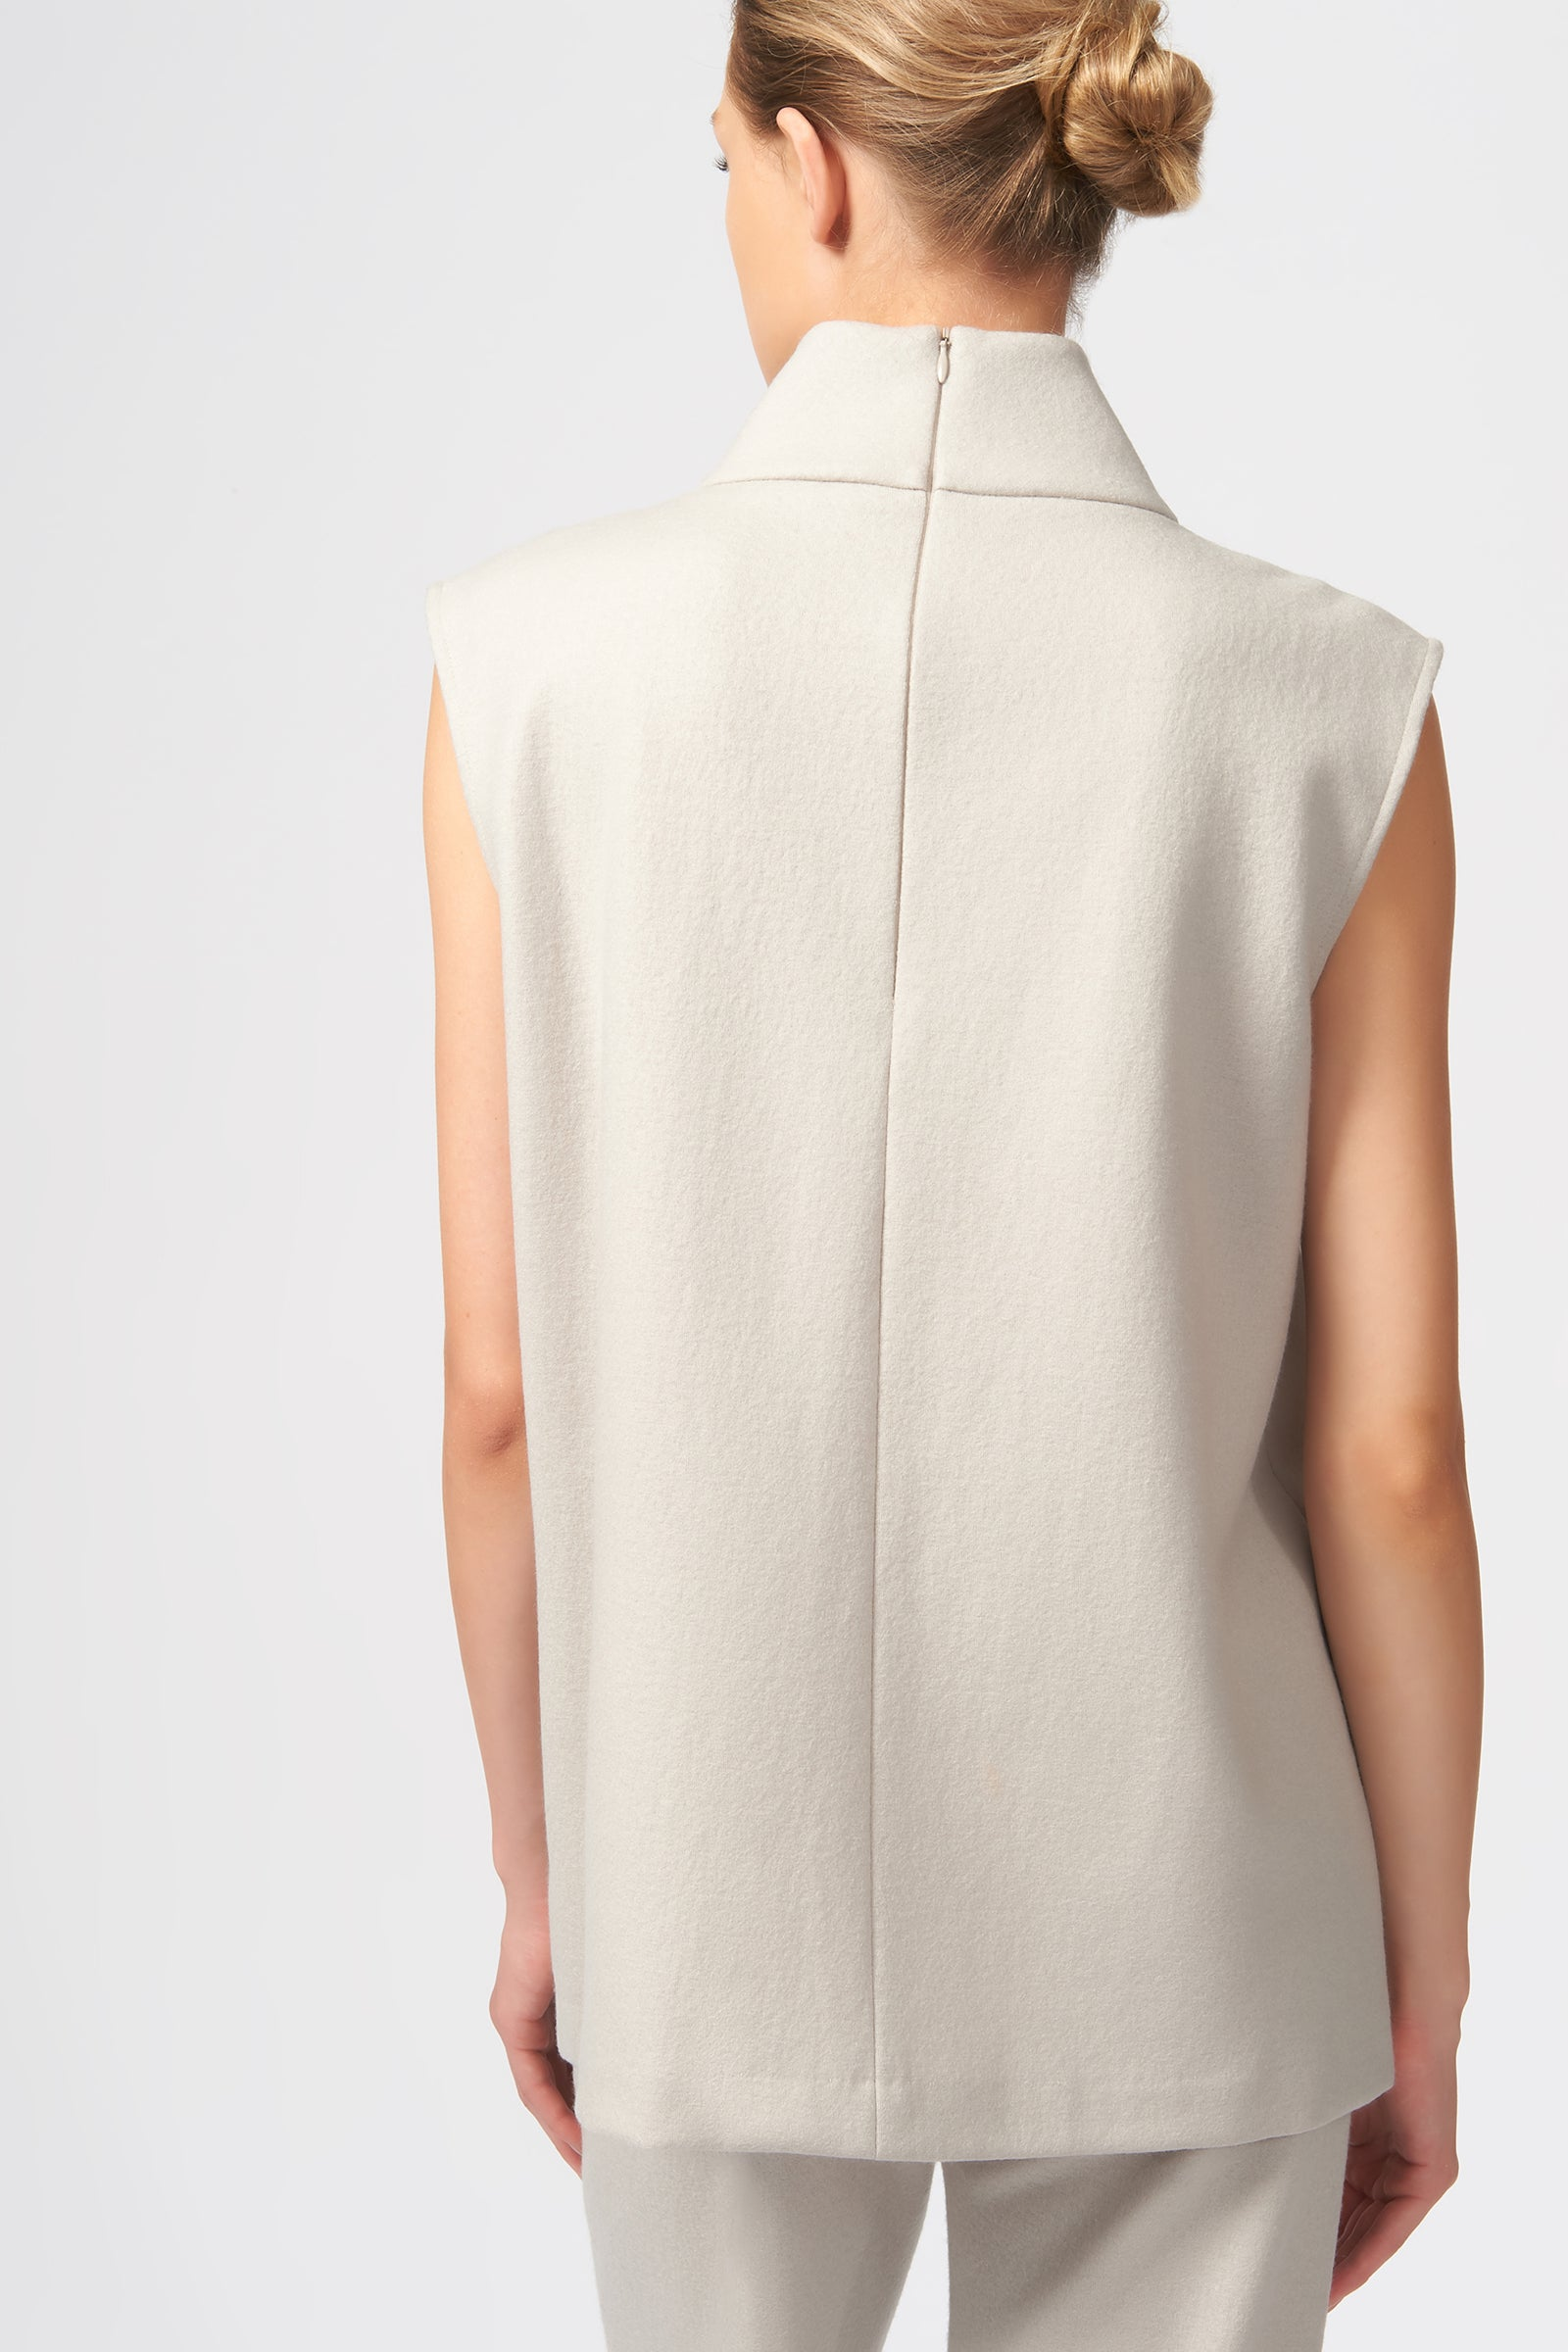 Kal Rieman Split Front T-Neck in Mink on Model Back View